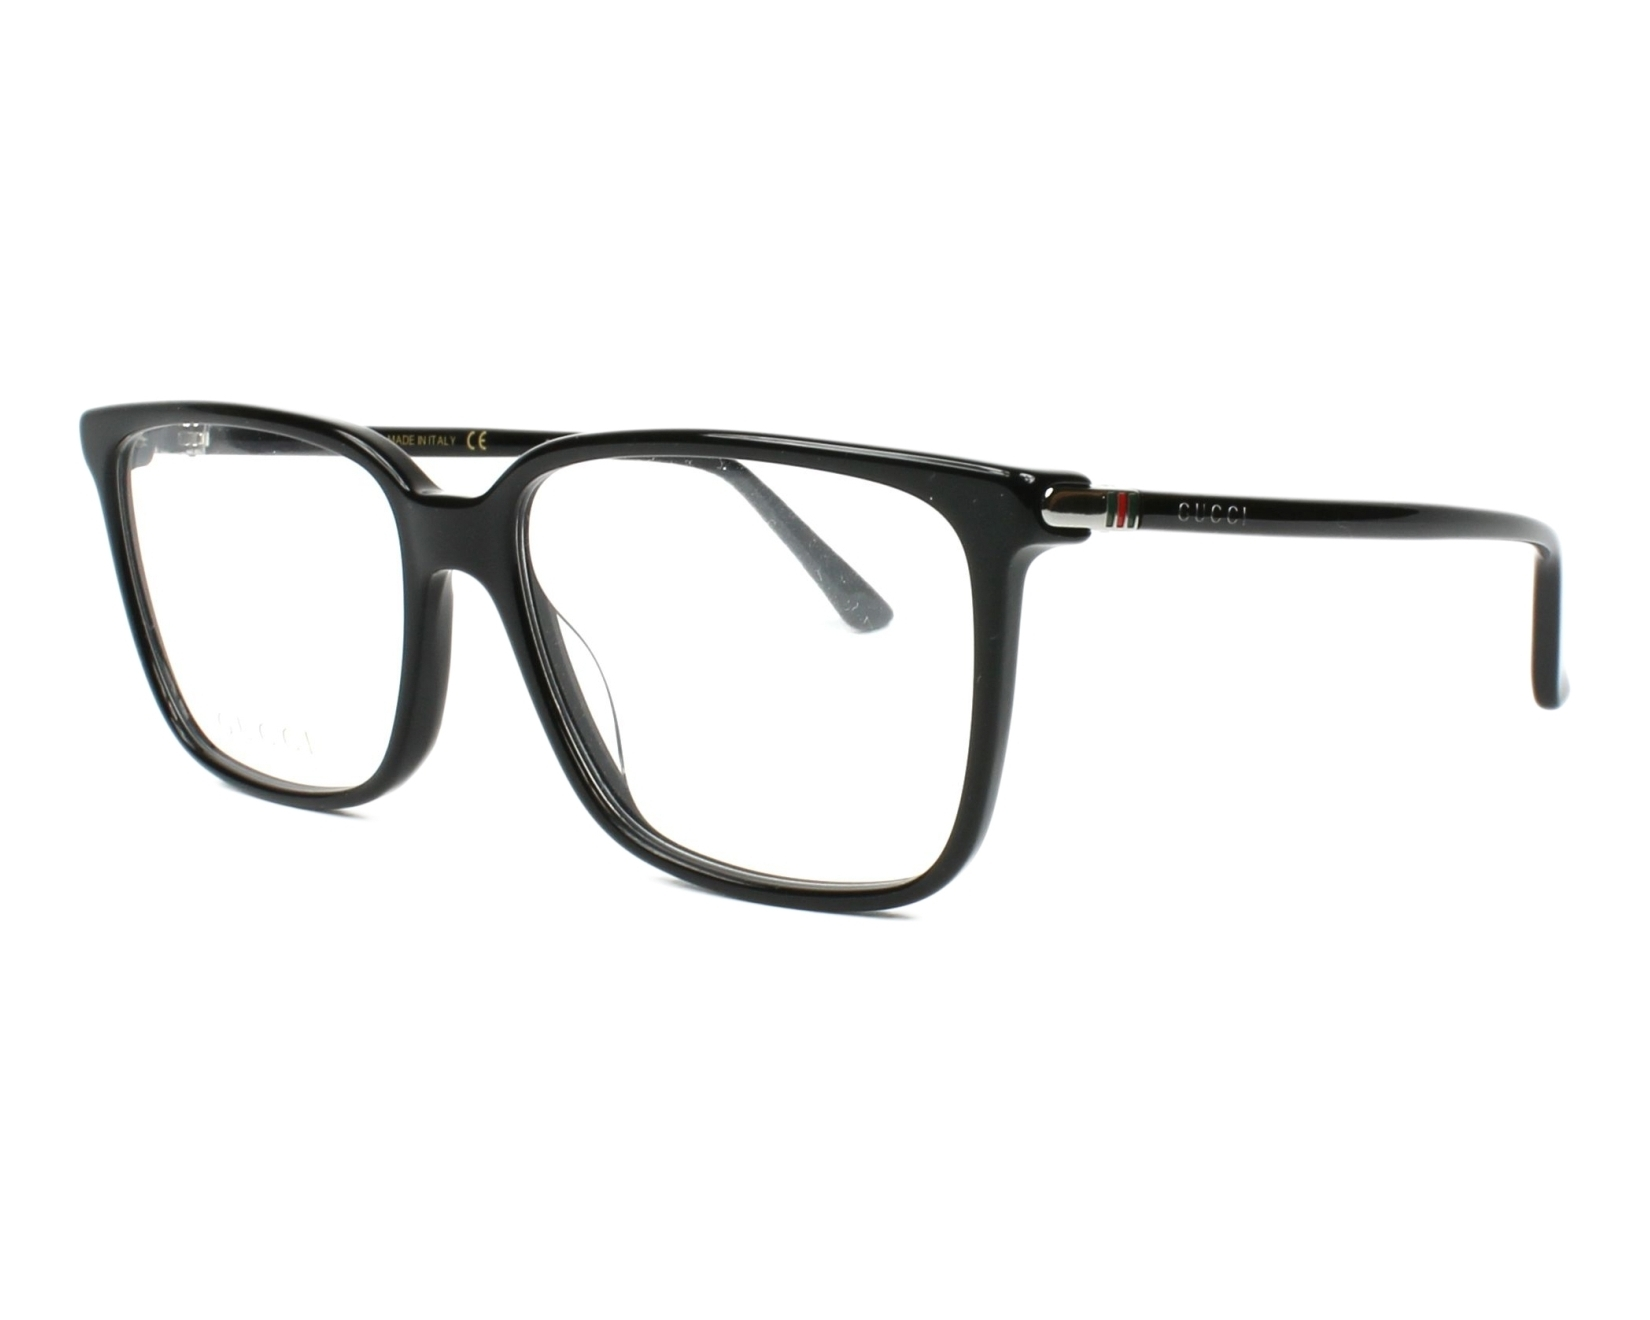 Gucci Eyeglasses Black GG-00190 001 - Visionet US